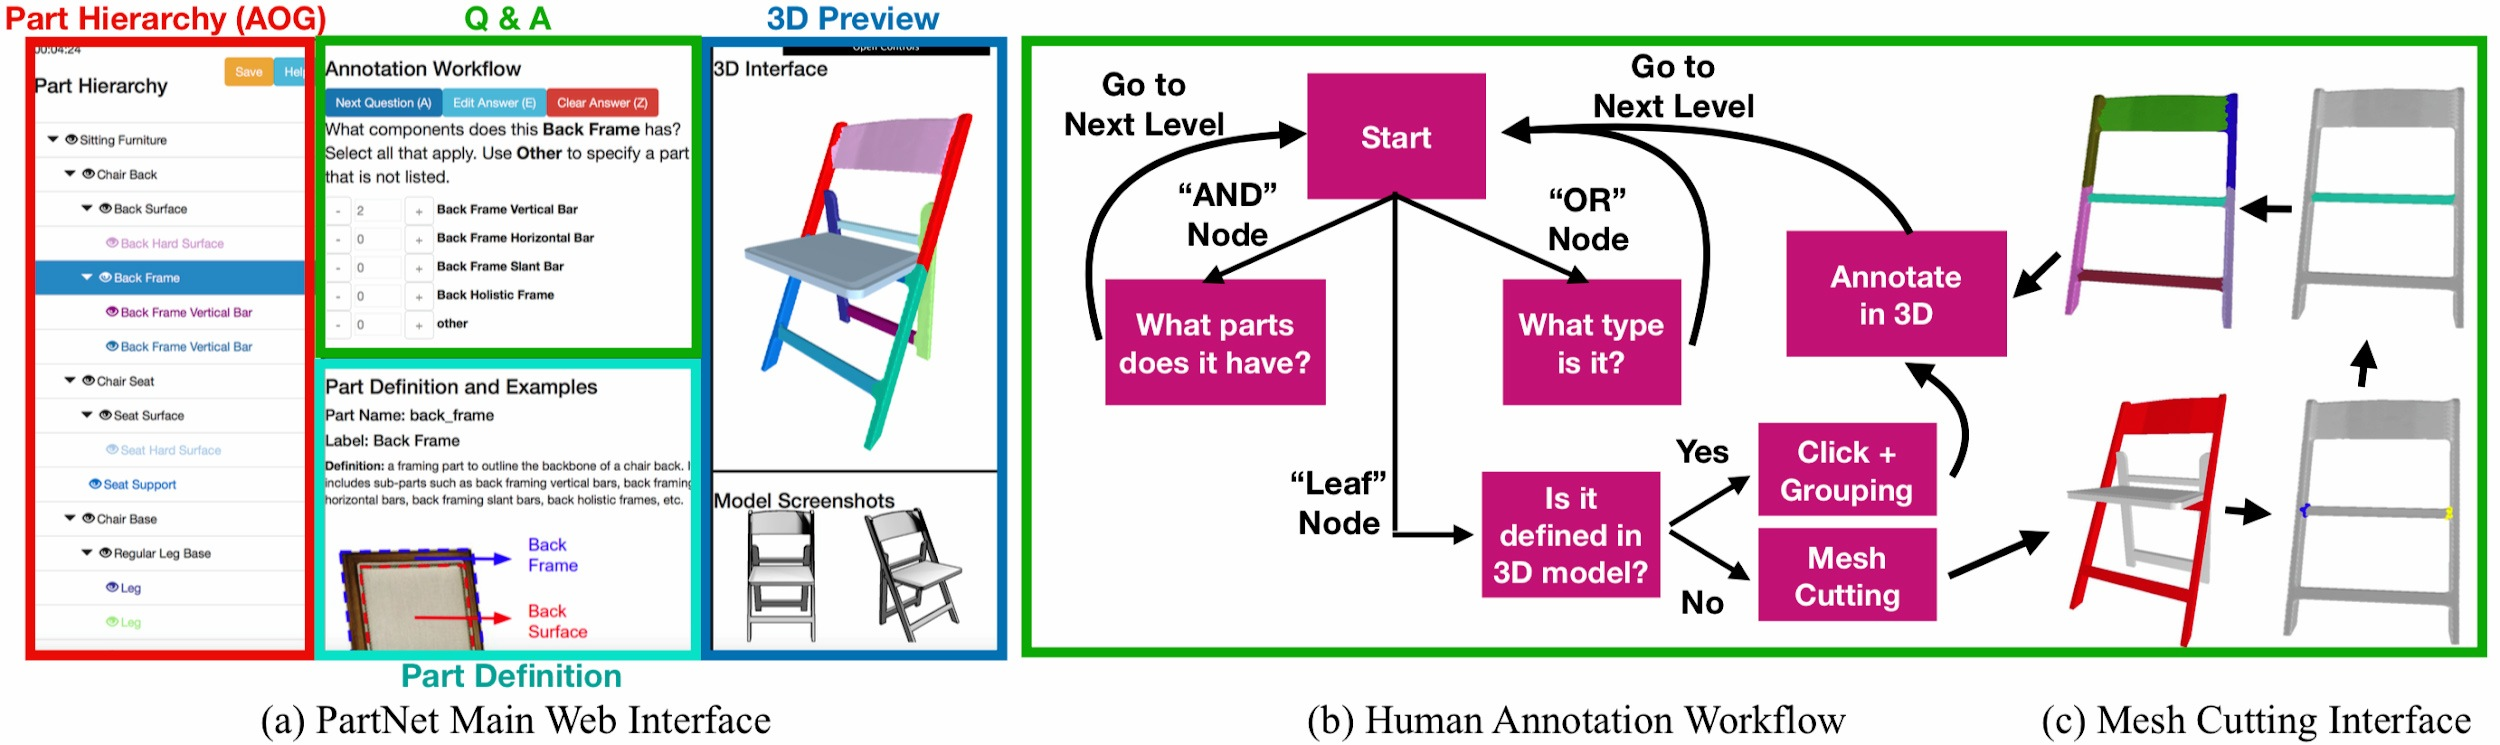 Figure 2. From left to right: the annotation interface and its subsections, the proposed question-answering human annotation workflow, and examples from the mesh cutting interface.